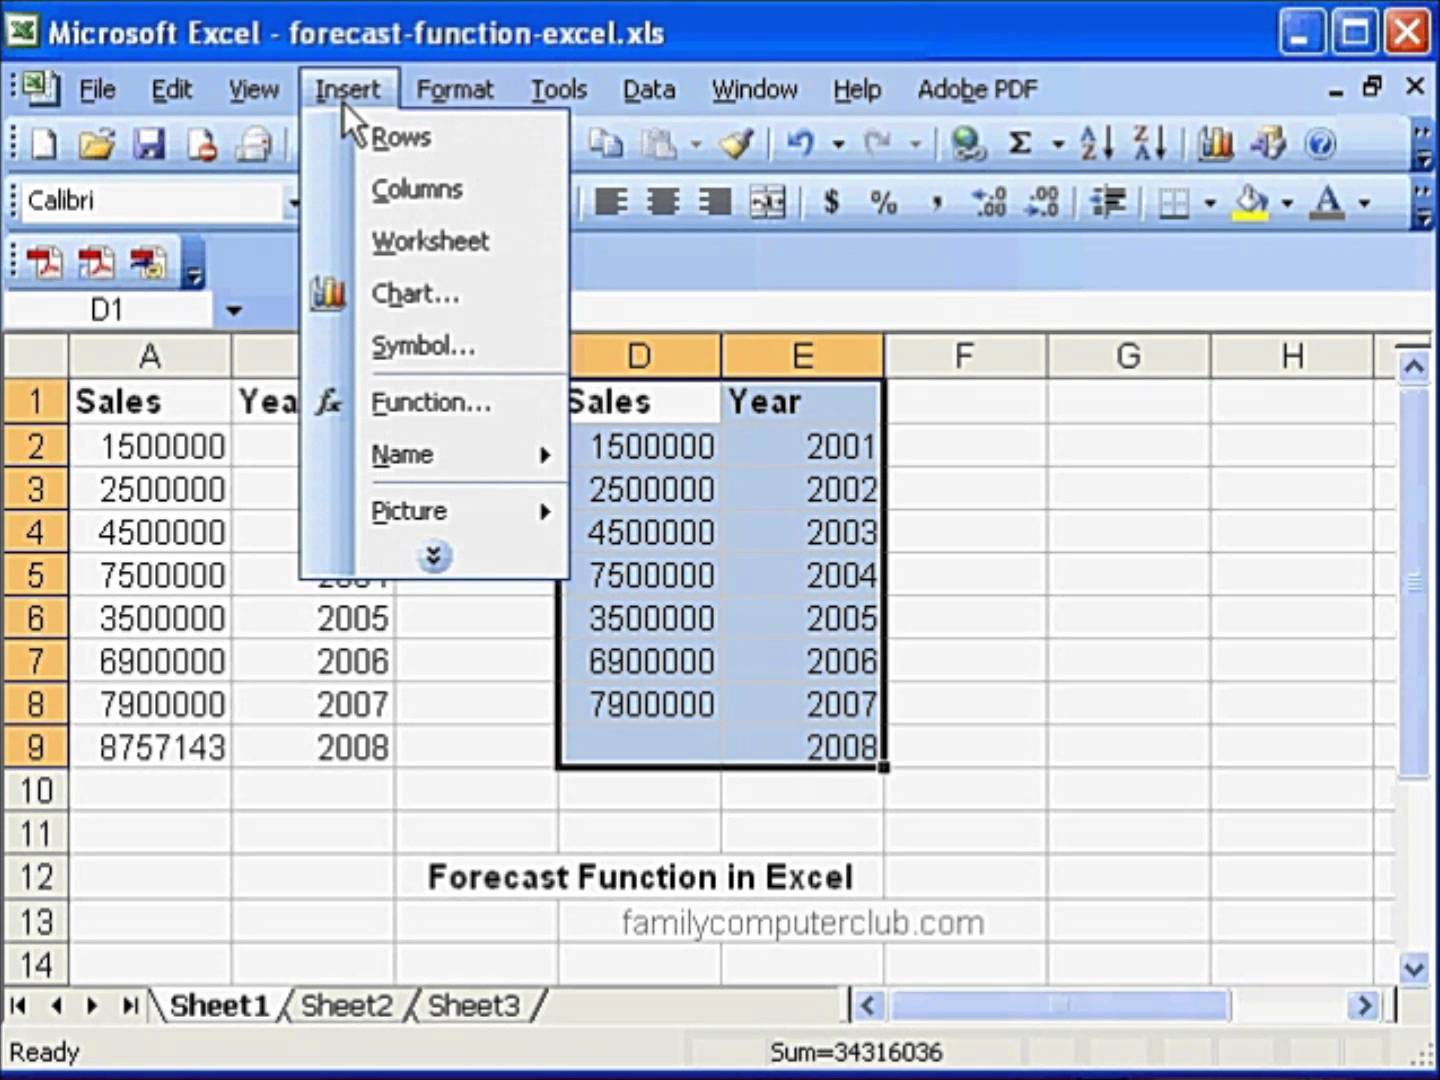 Restaurant Sales Forecast Excel Template | Homebiz4U2Profit Inside Sales Forecast Spreadsheet Pdf